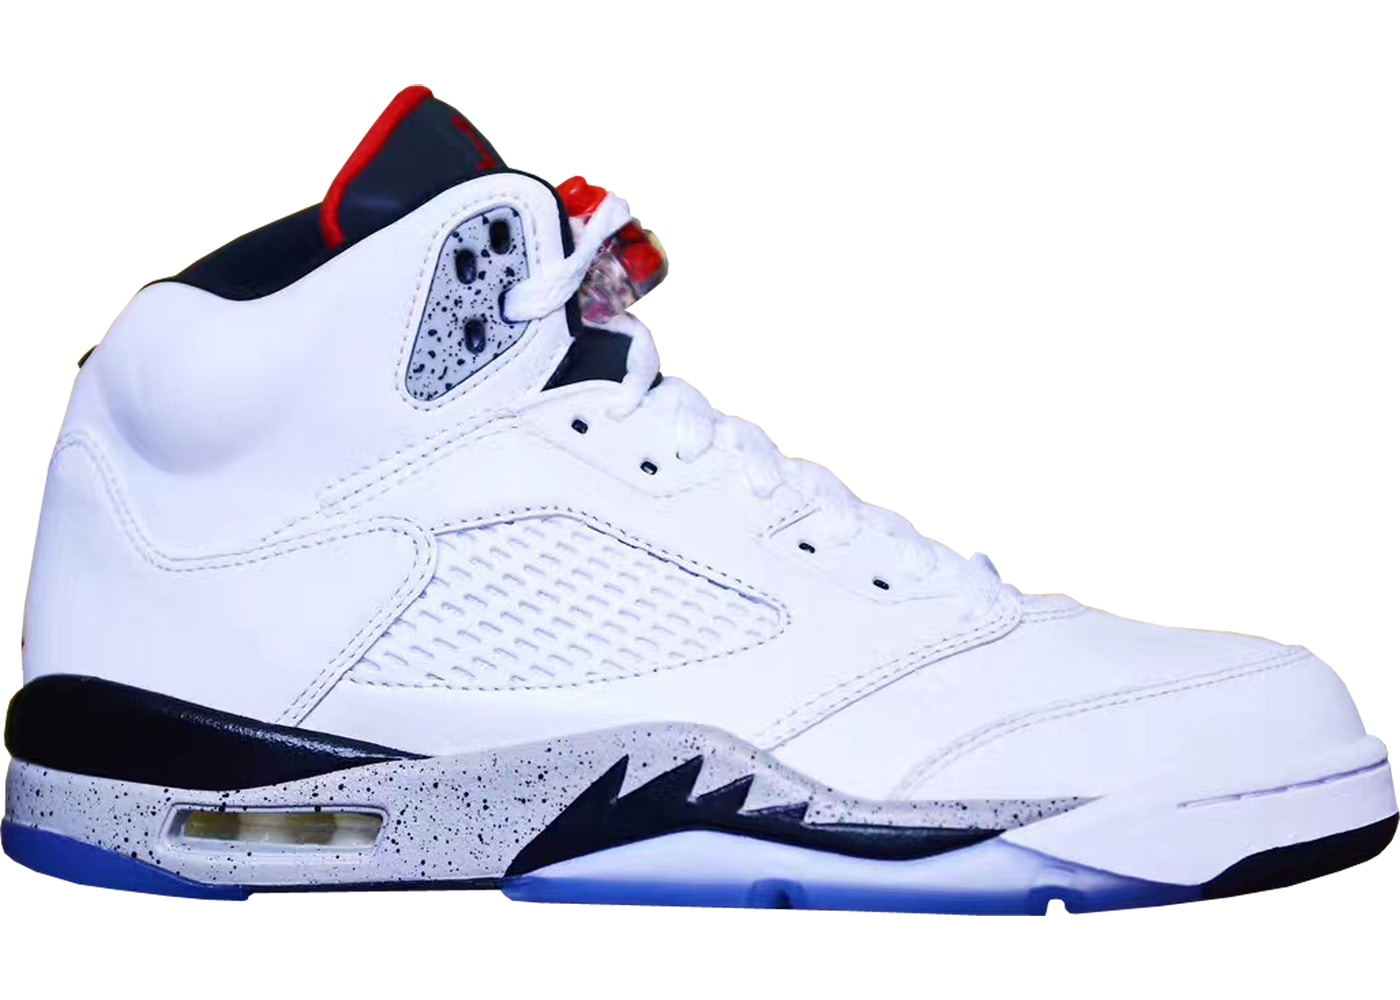 5340e1ee845d0f Buy Air Jordan 5 Shoes   Deadstock Sneakers